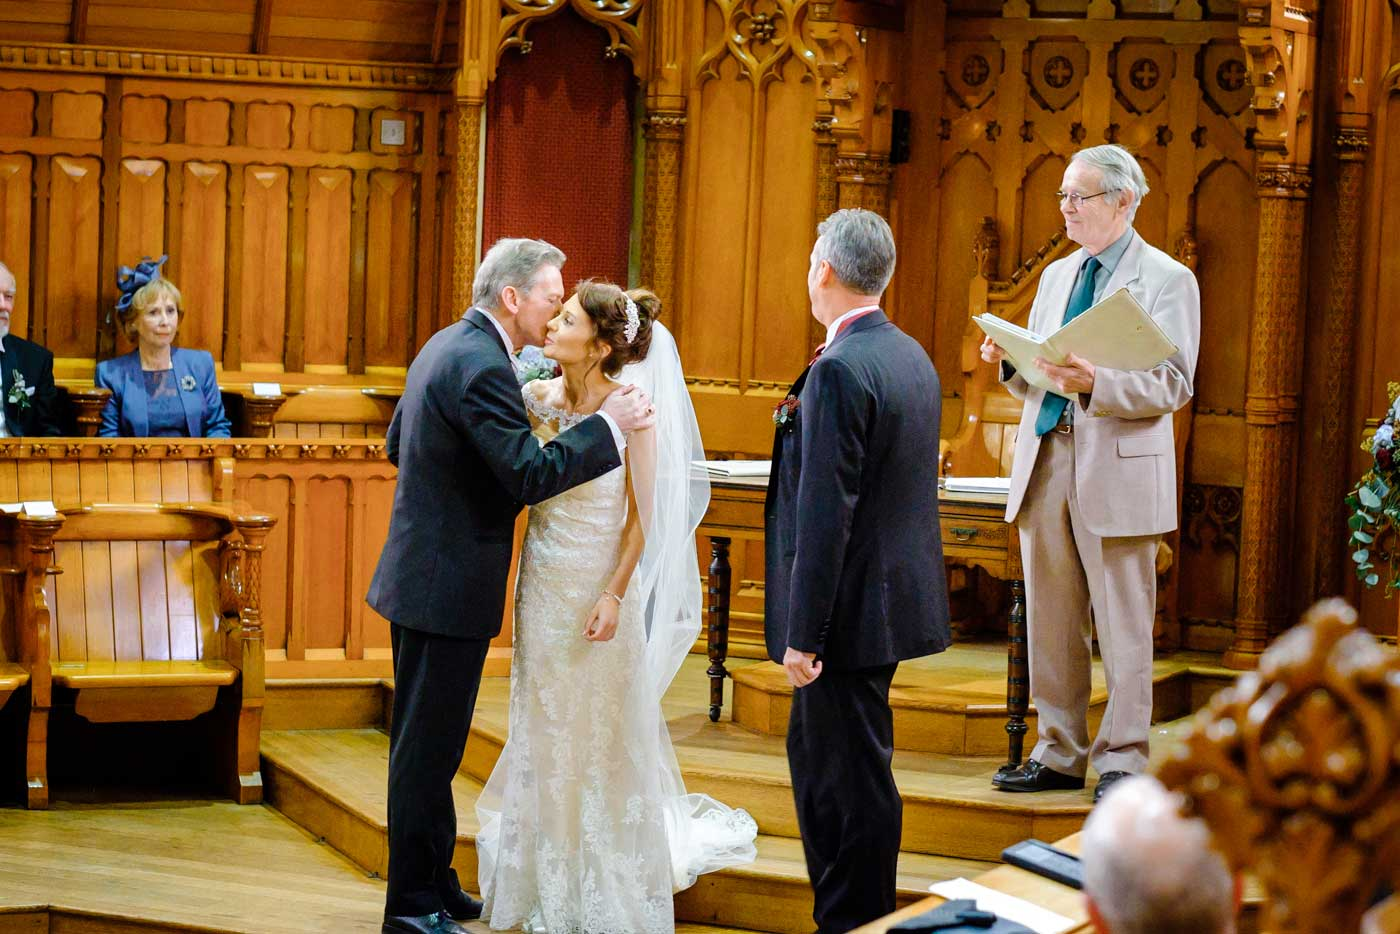 Bride giving her father a kiss before her wedding at The Callow Great Hall at Stanbrook Abbey